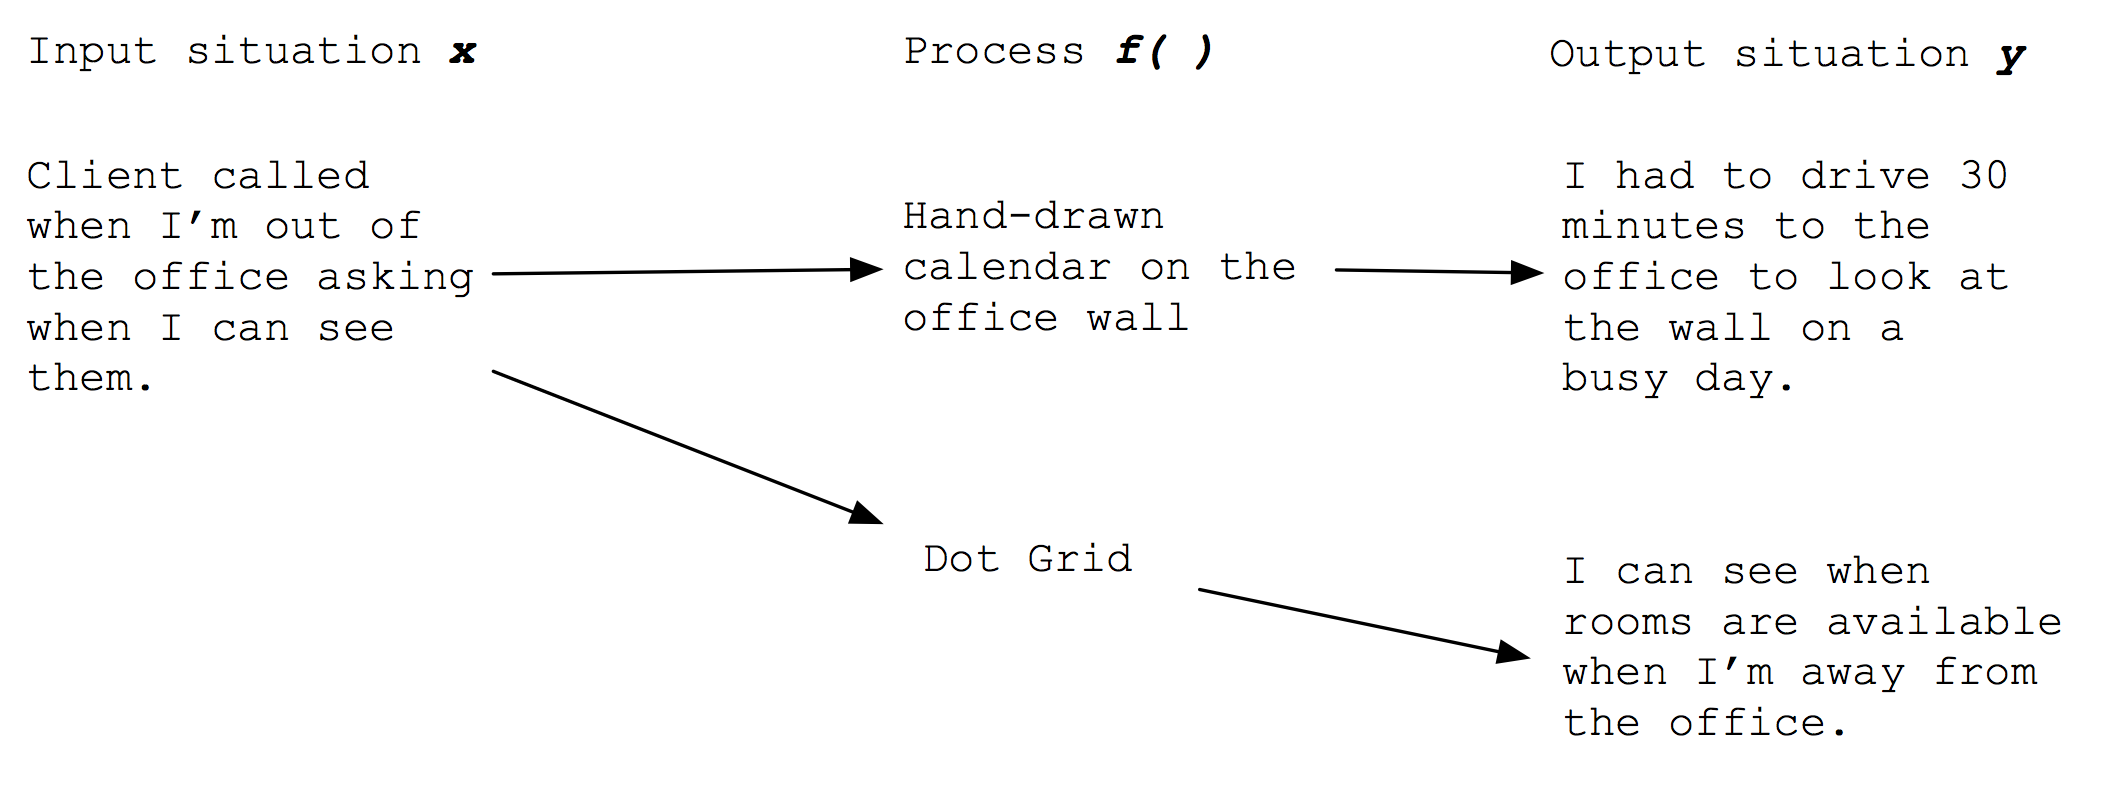 Dot grid taking the place of f()